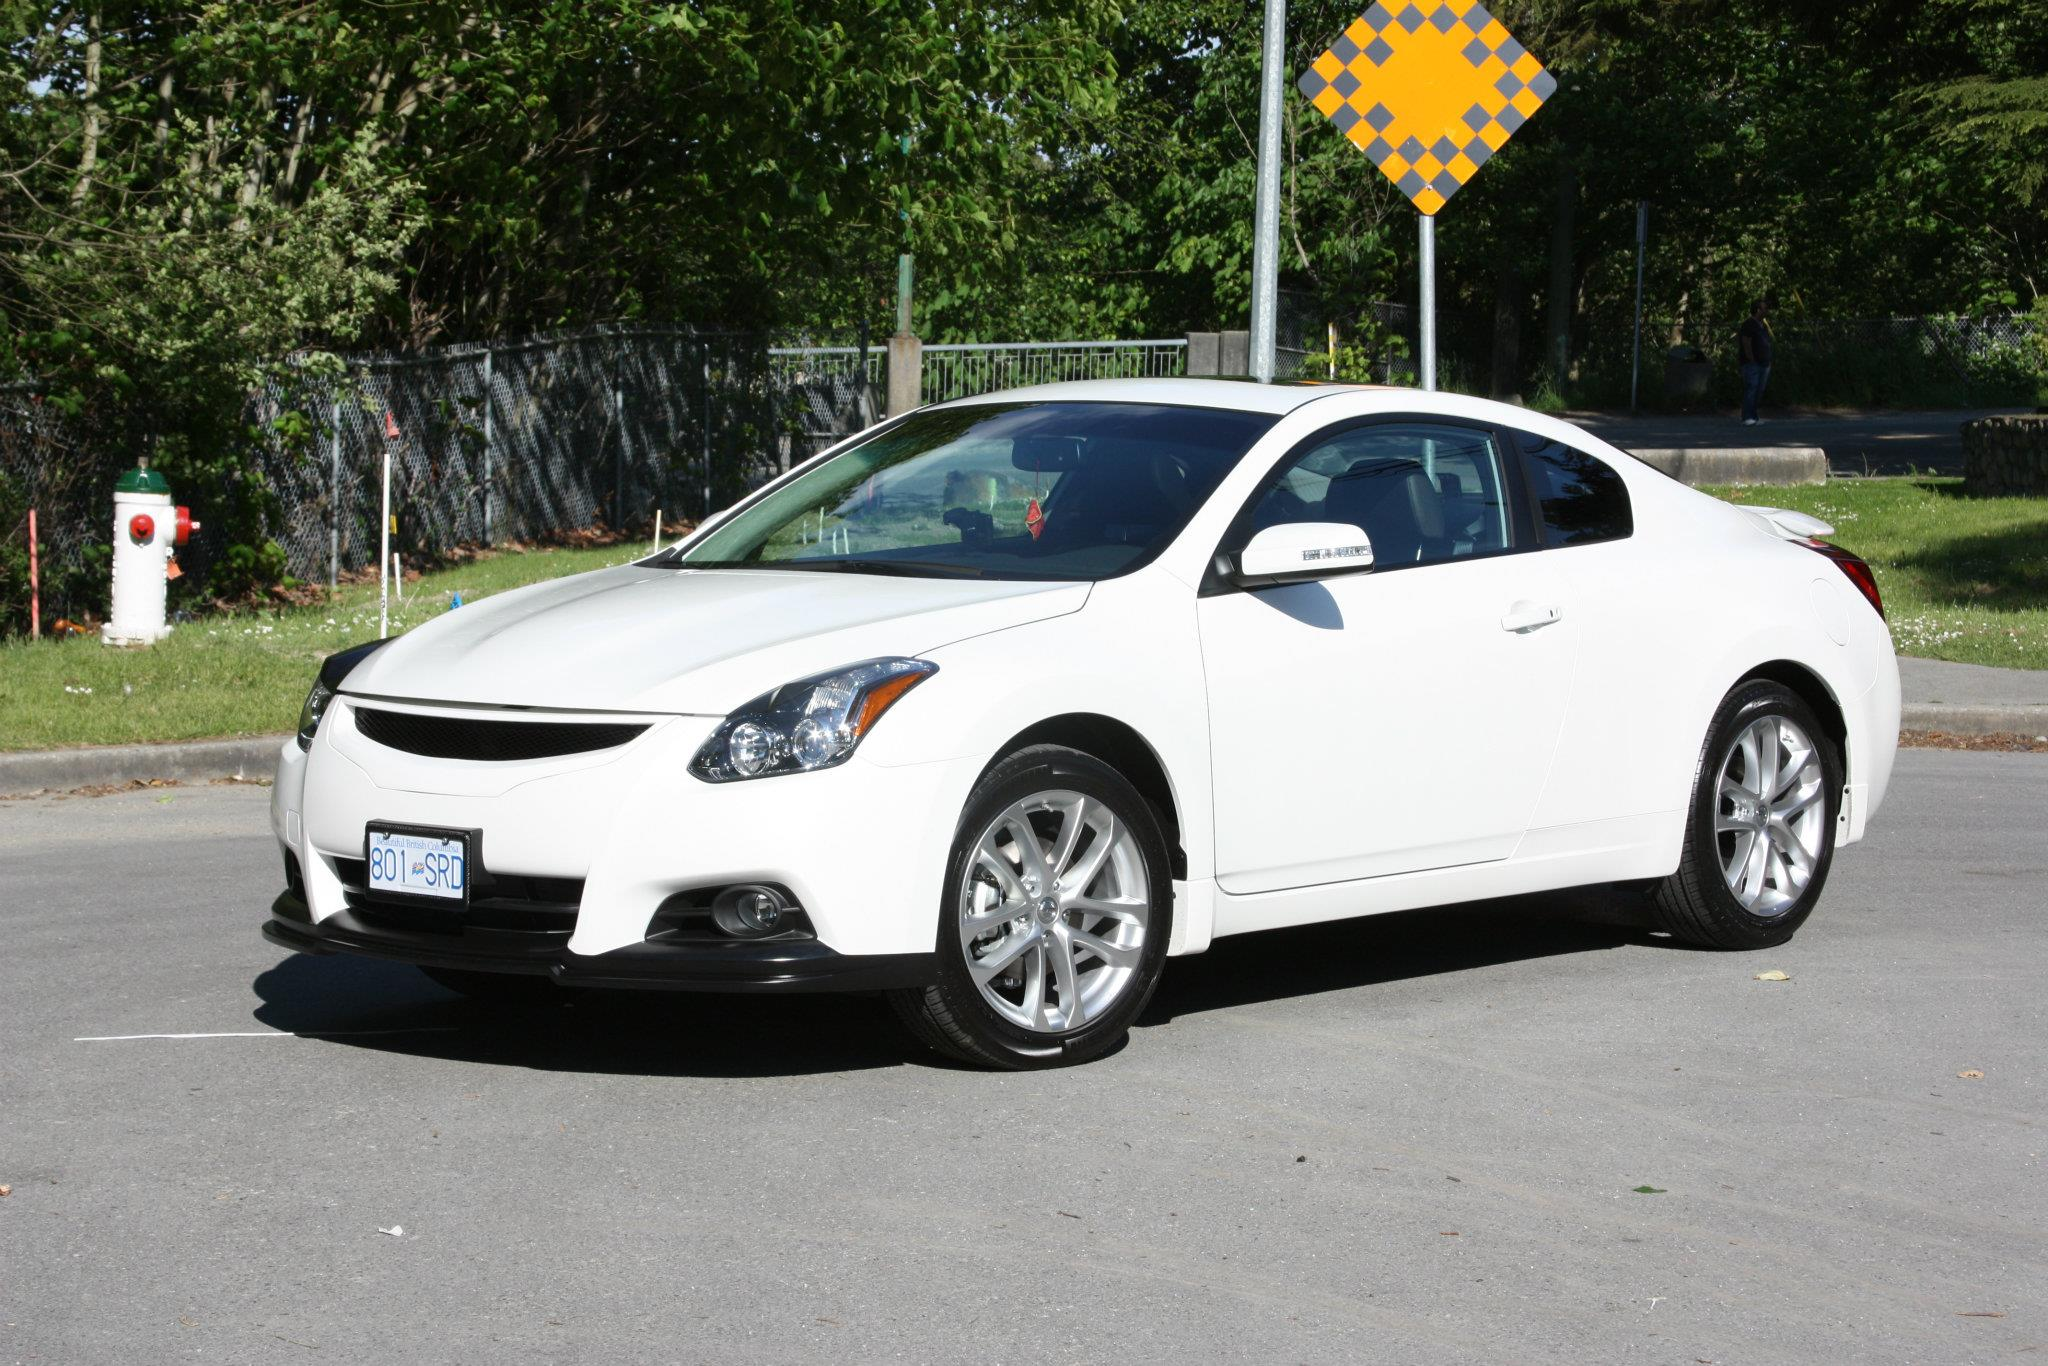 2012 nissan altima iv pictures information and specs. Black Bedroom Furniture Sets. Home Design Ideas